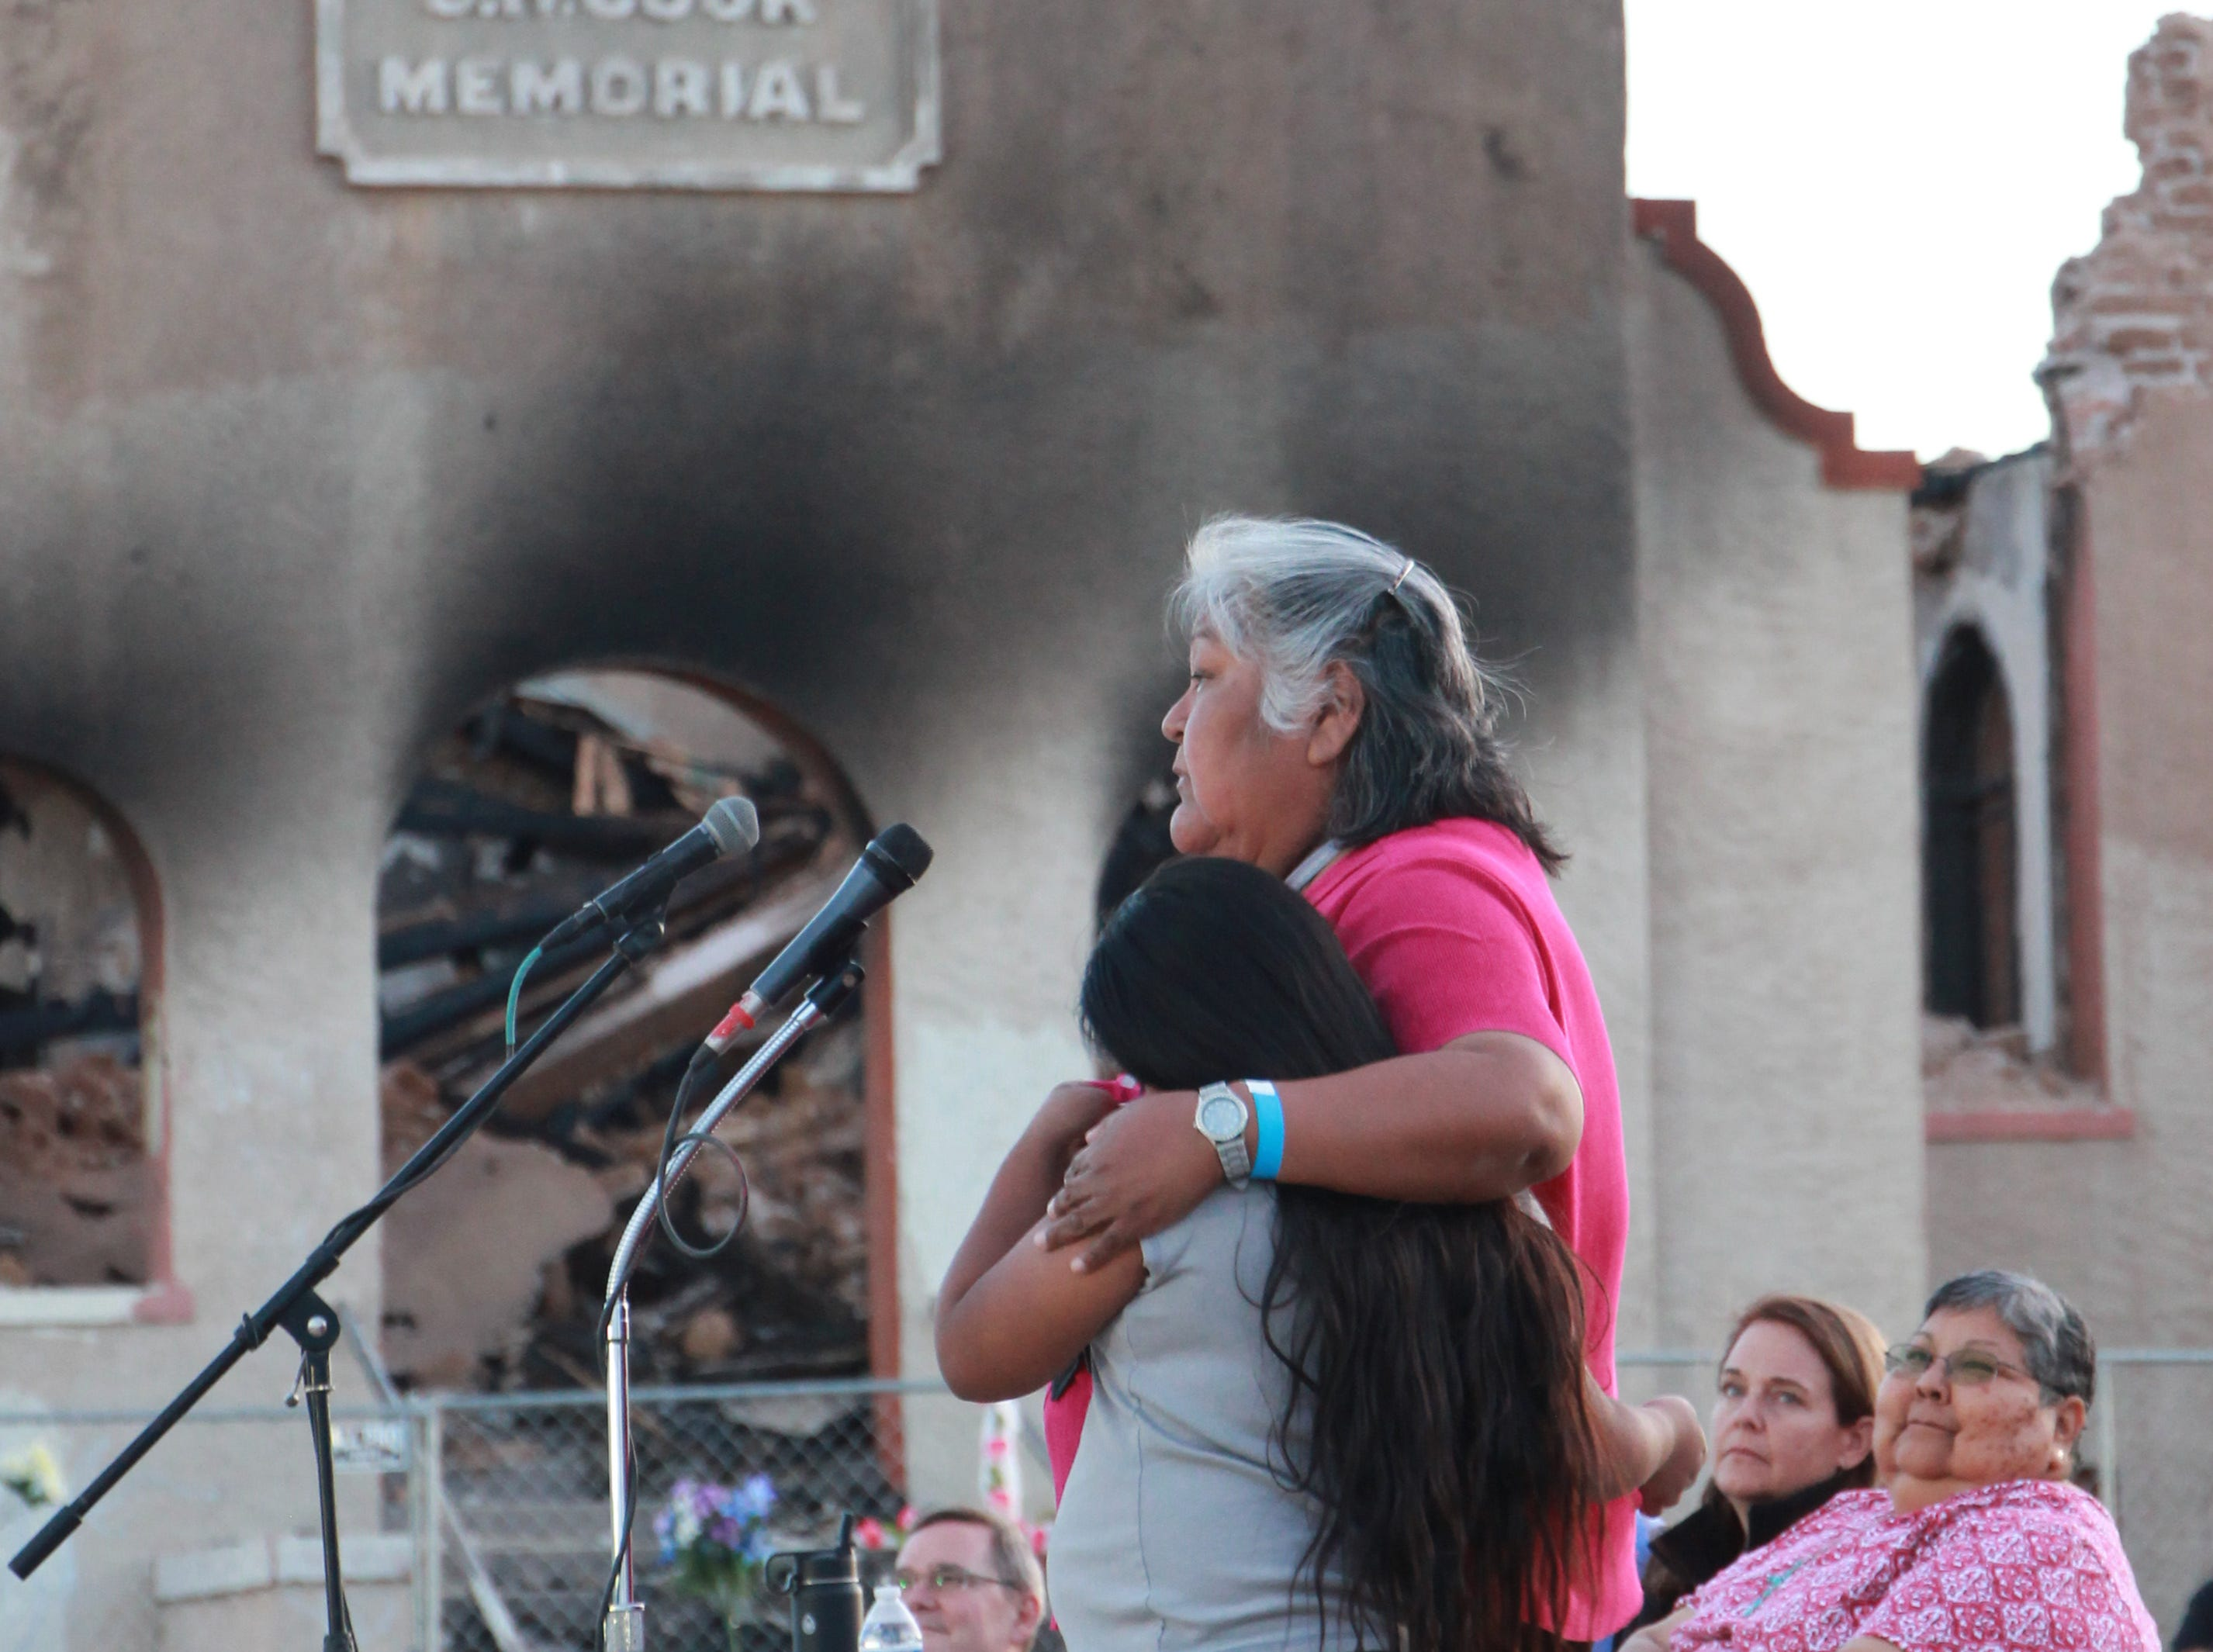 A member of the community spoke upon the memories she shared with the old church.